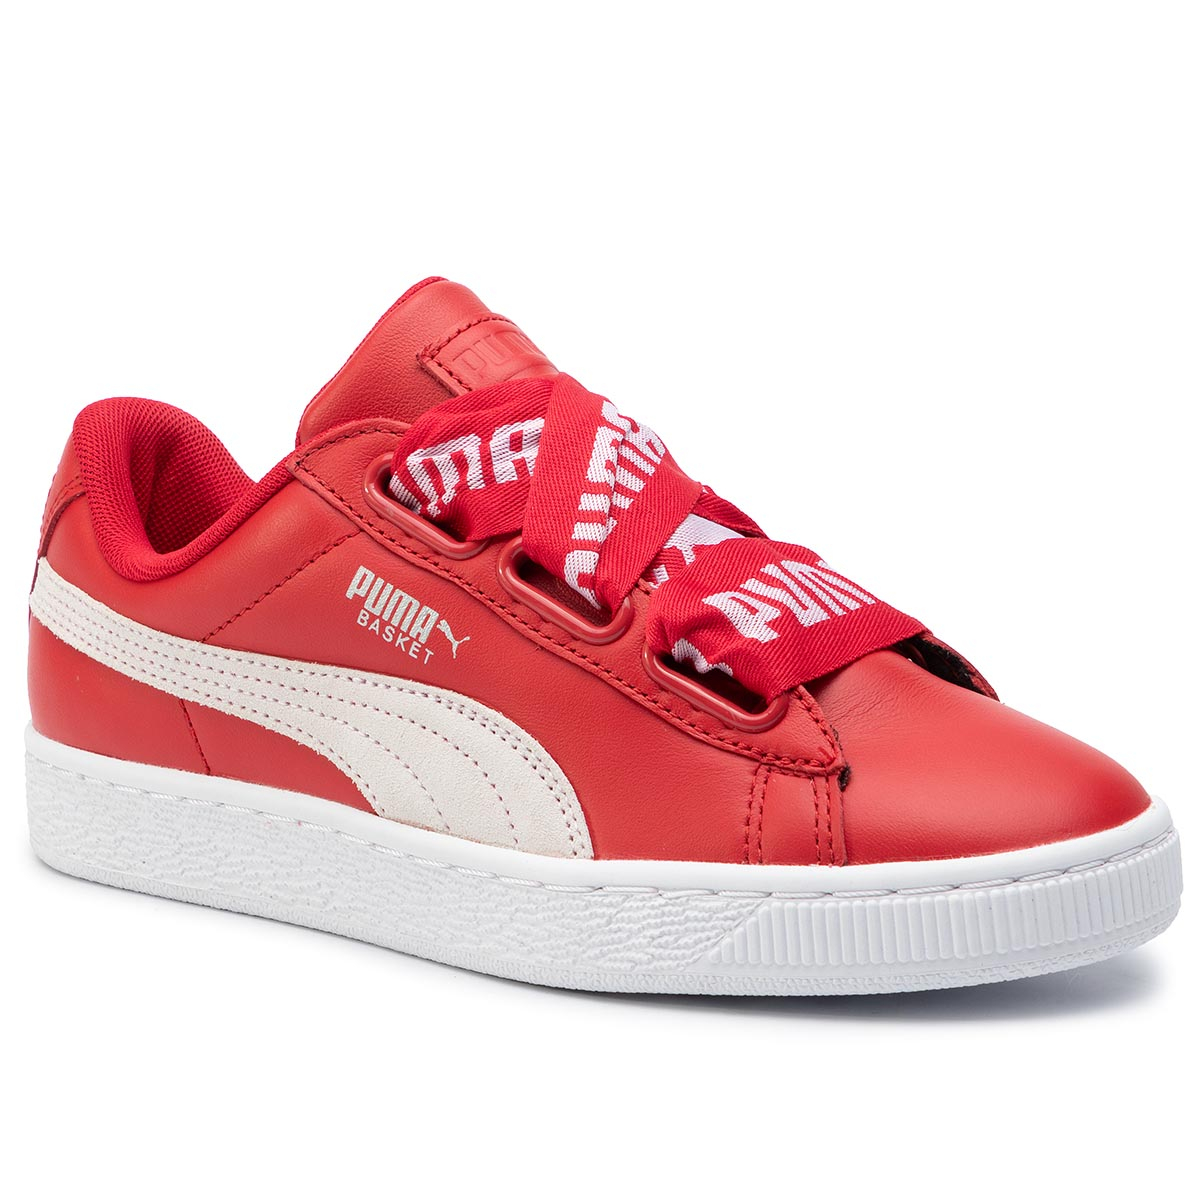 Sneakers PUMA - Basket Heart De Wn's 364082 03 Toreador/PumaWhite